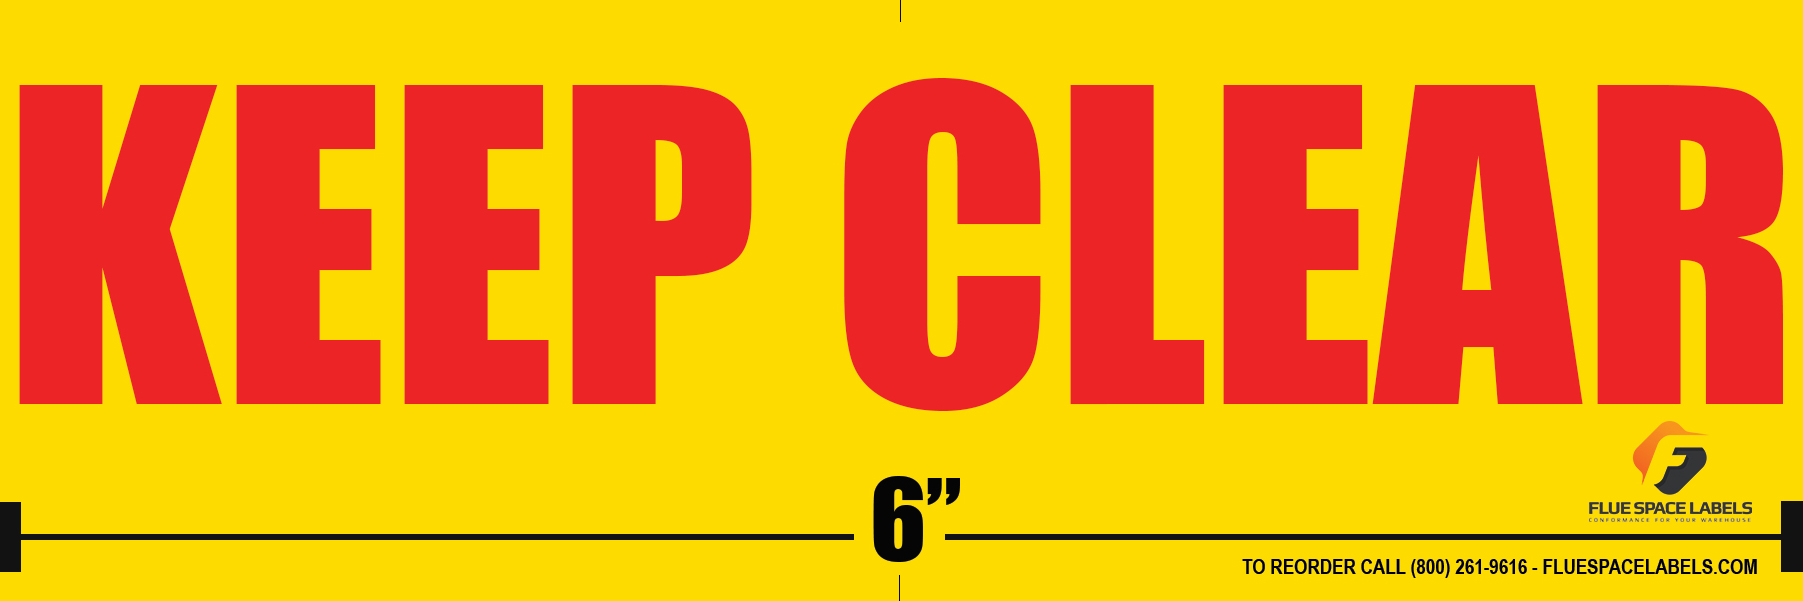 Yellow Back Ground with Red Fonts Flue Space Labels 6x2